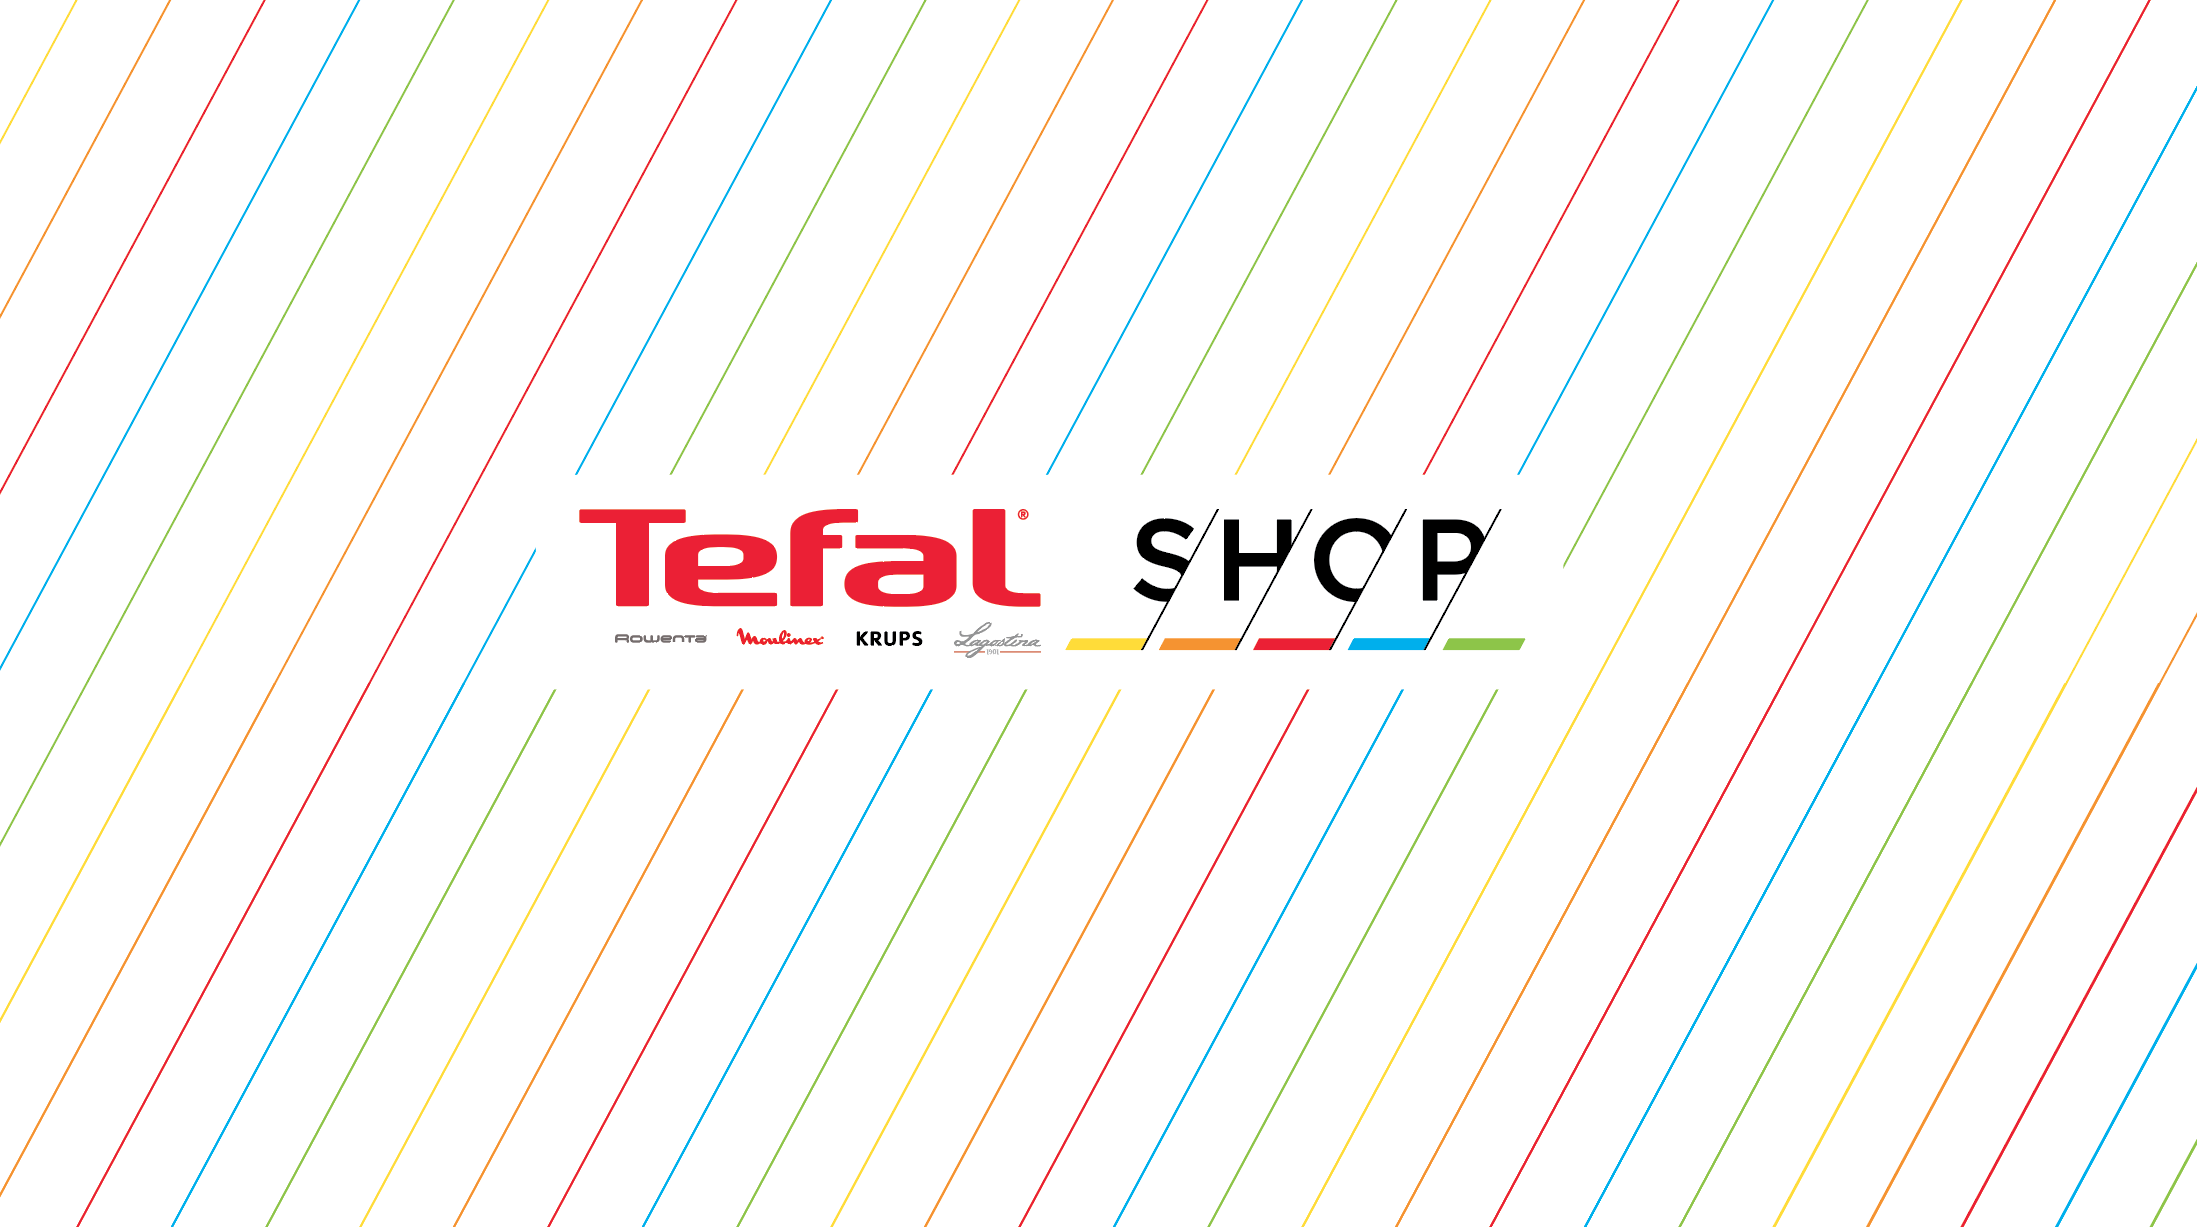 TEFAL Shop / identity and shop concept design